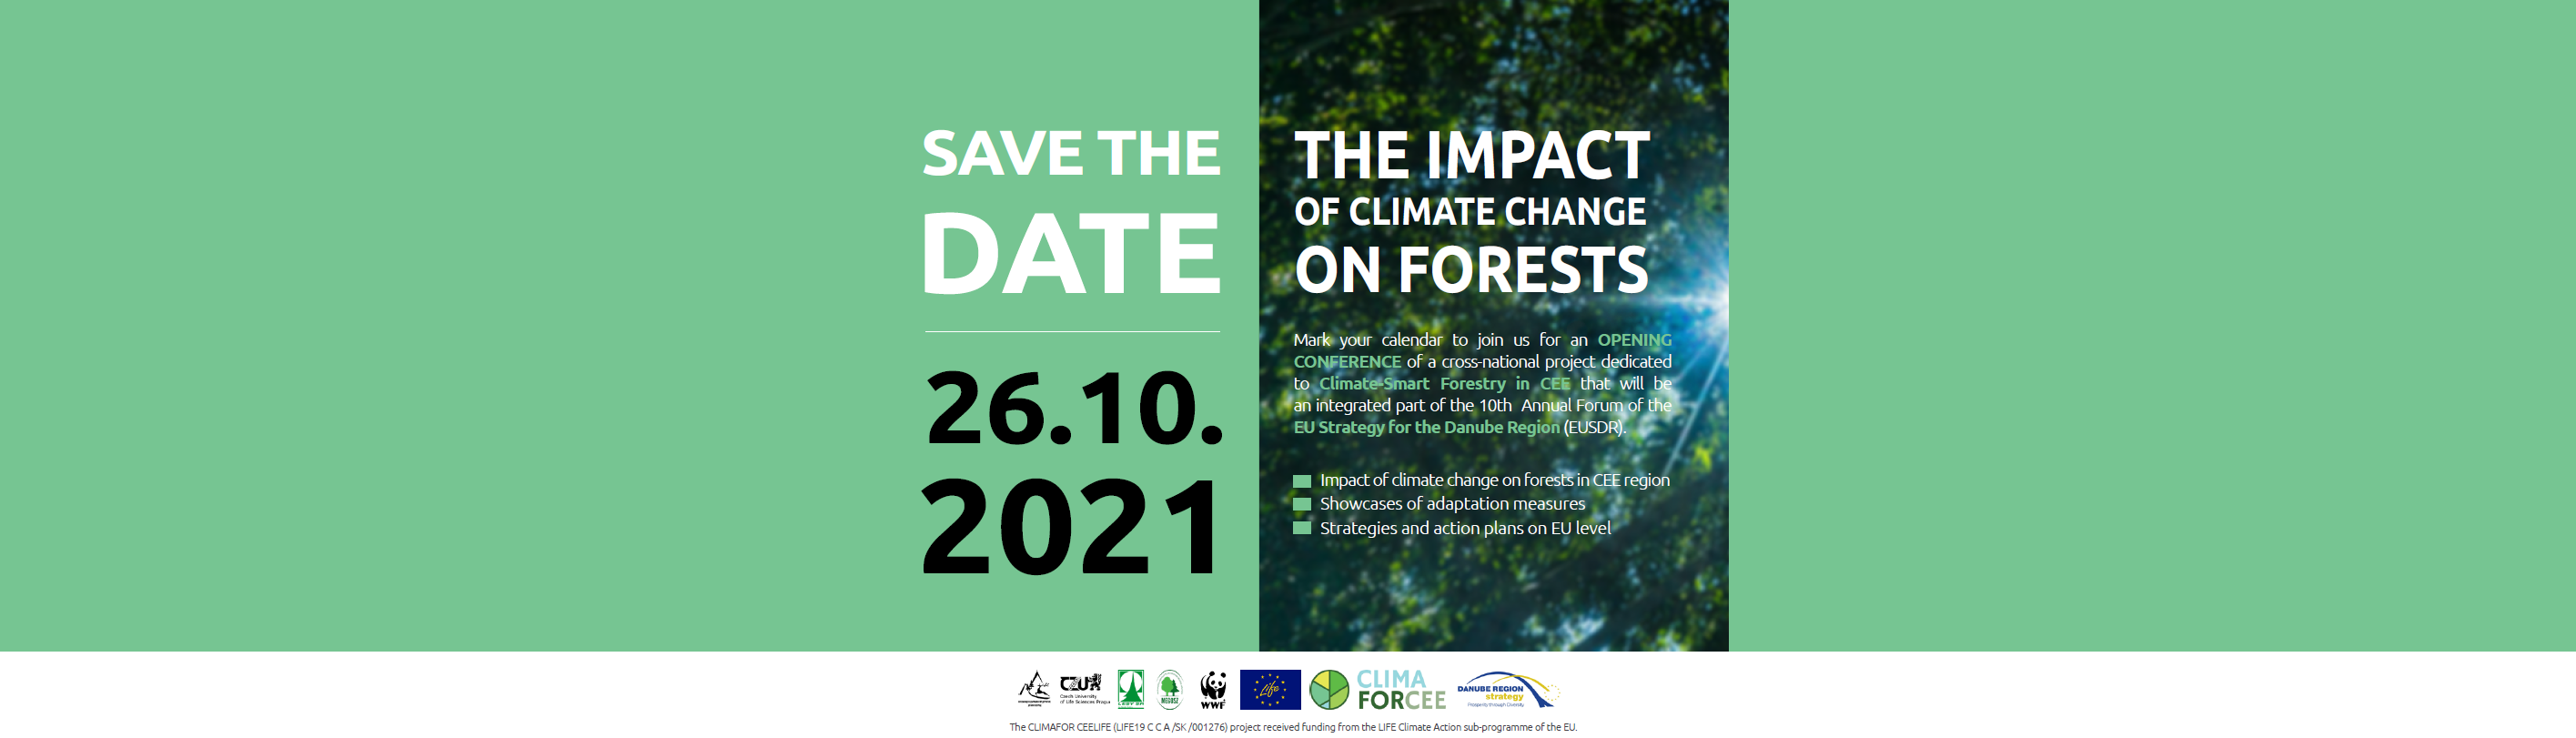 The Impact of Climate Change on Forests Conference – Save the Date